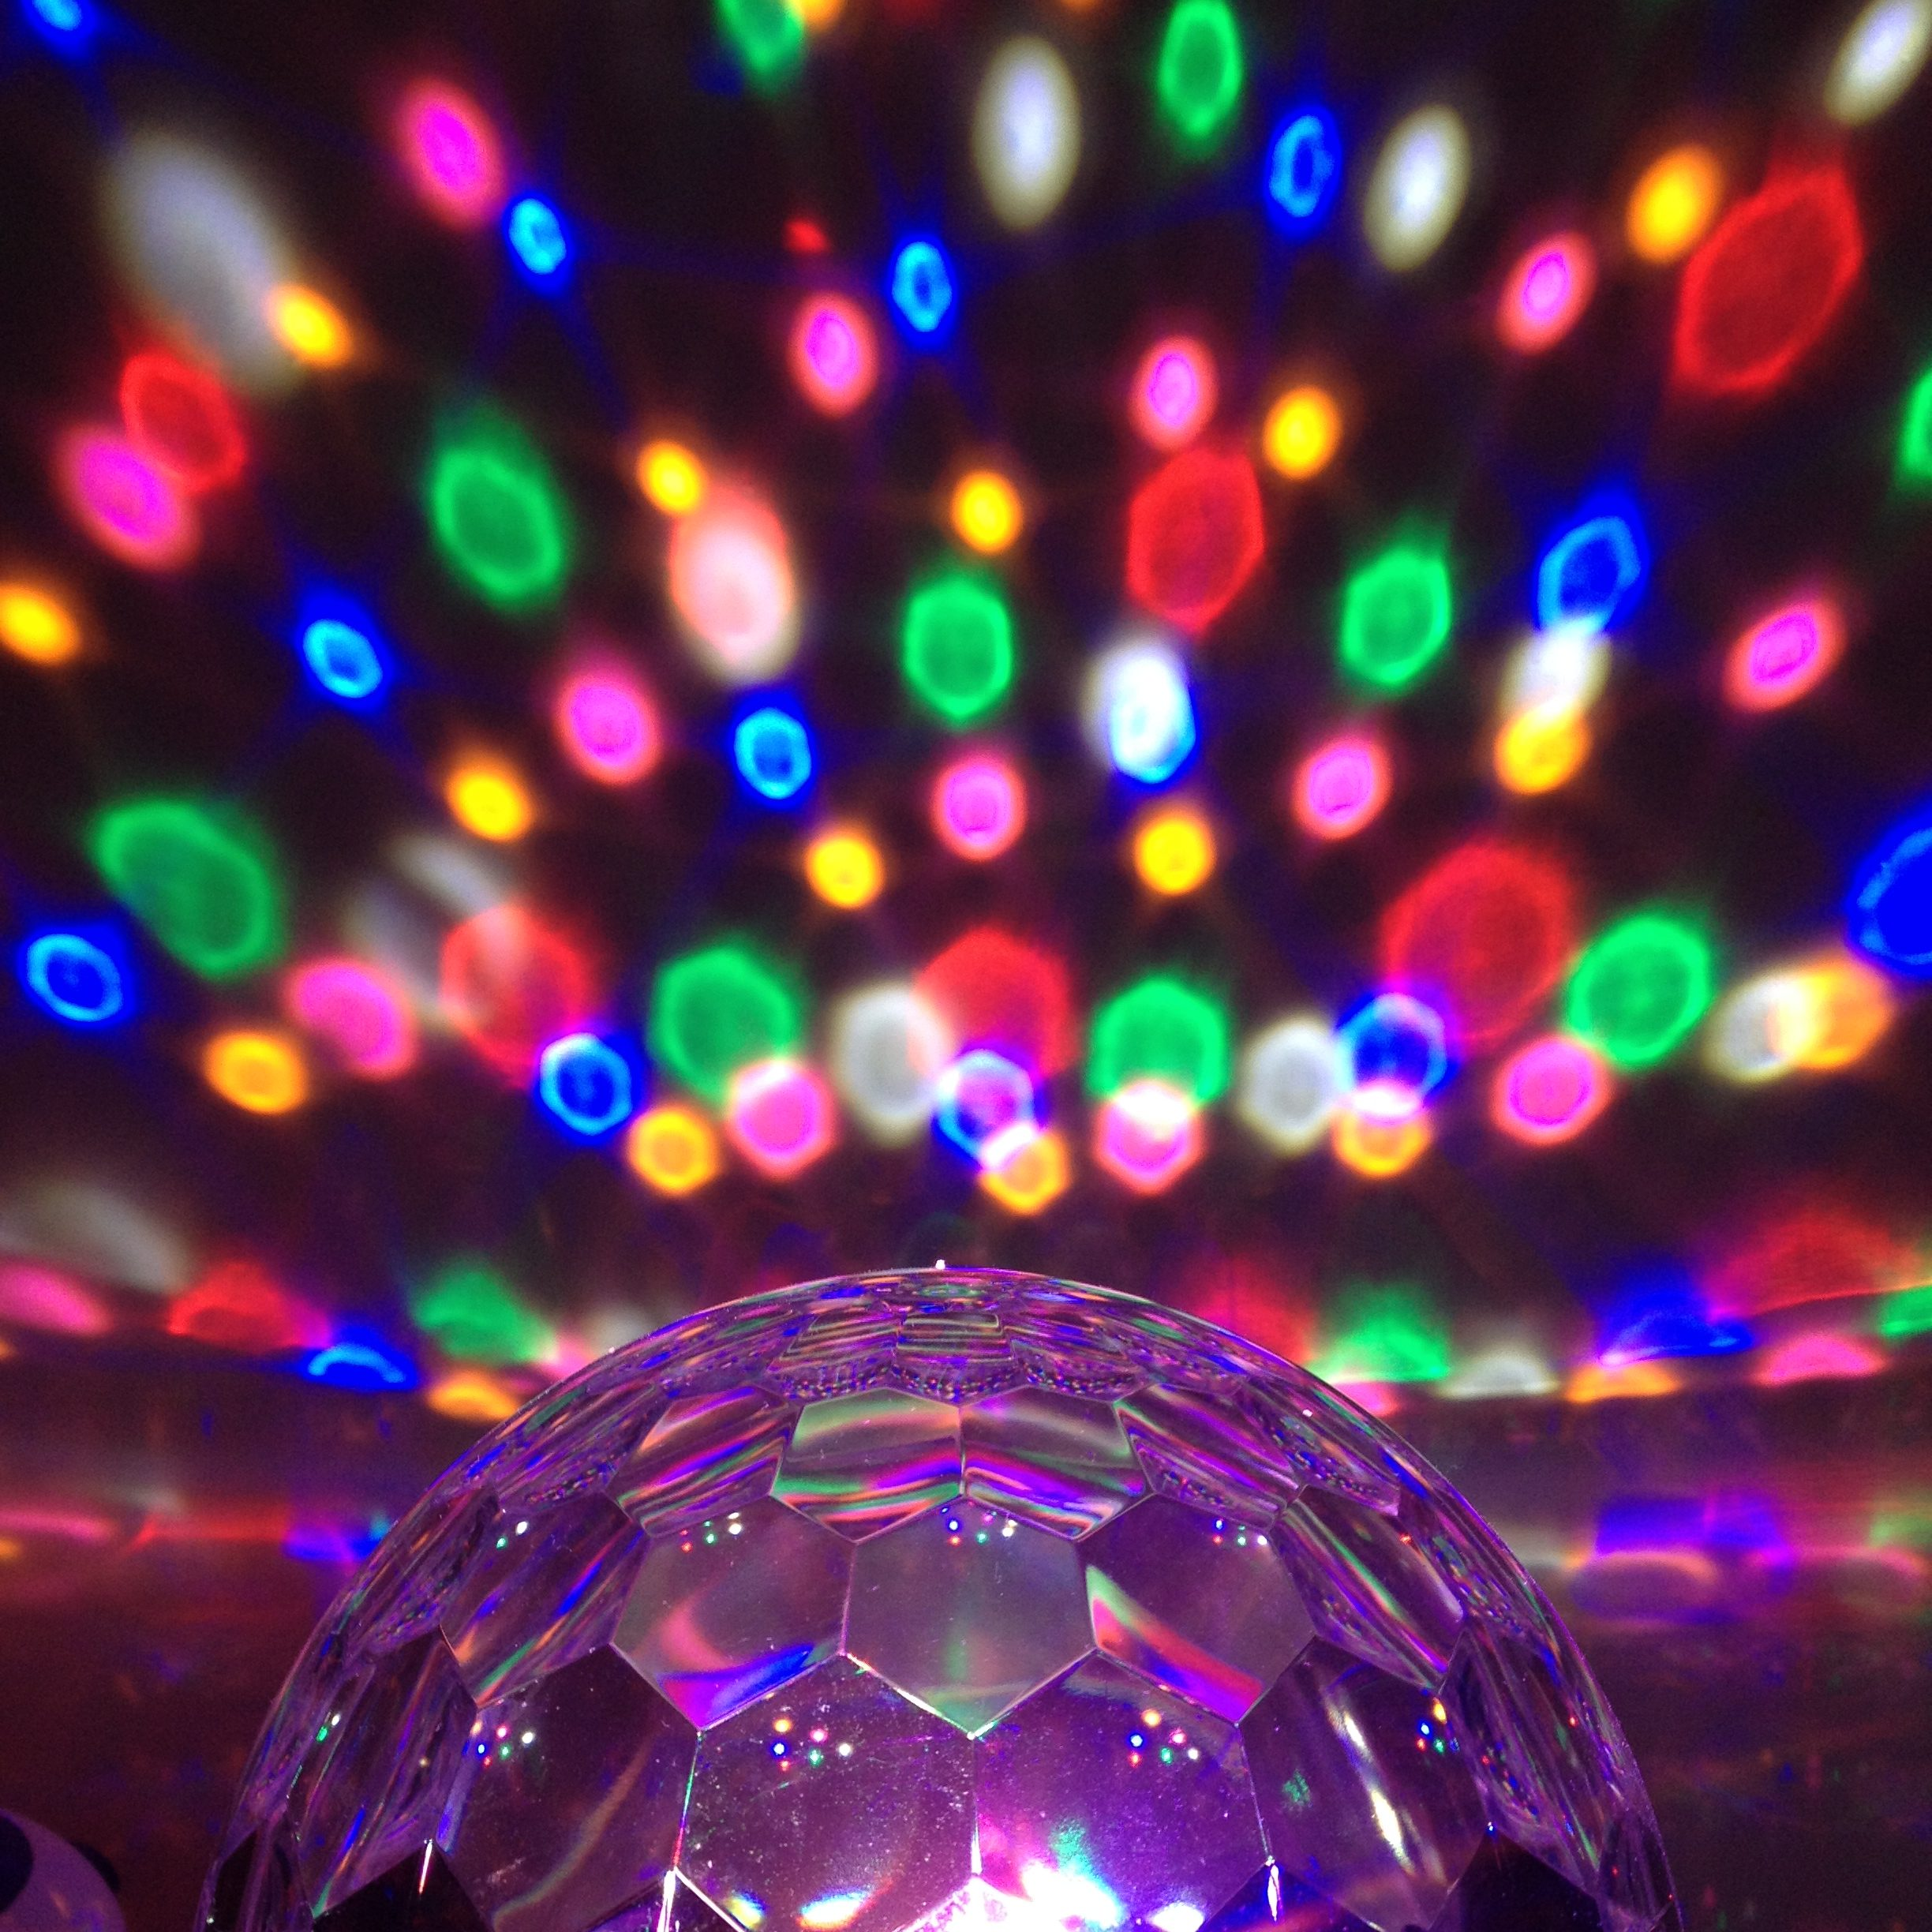 Disco ball light projecting coloured spots onto the wall